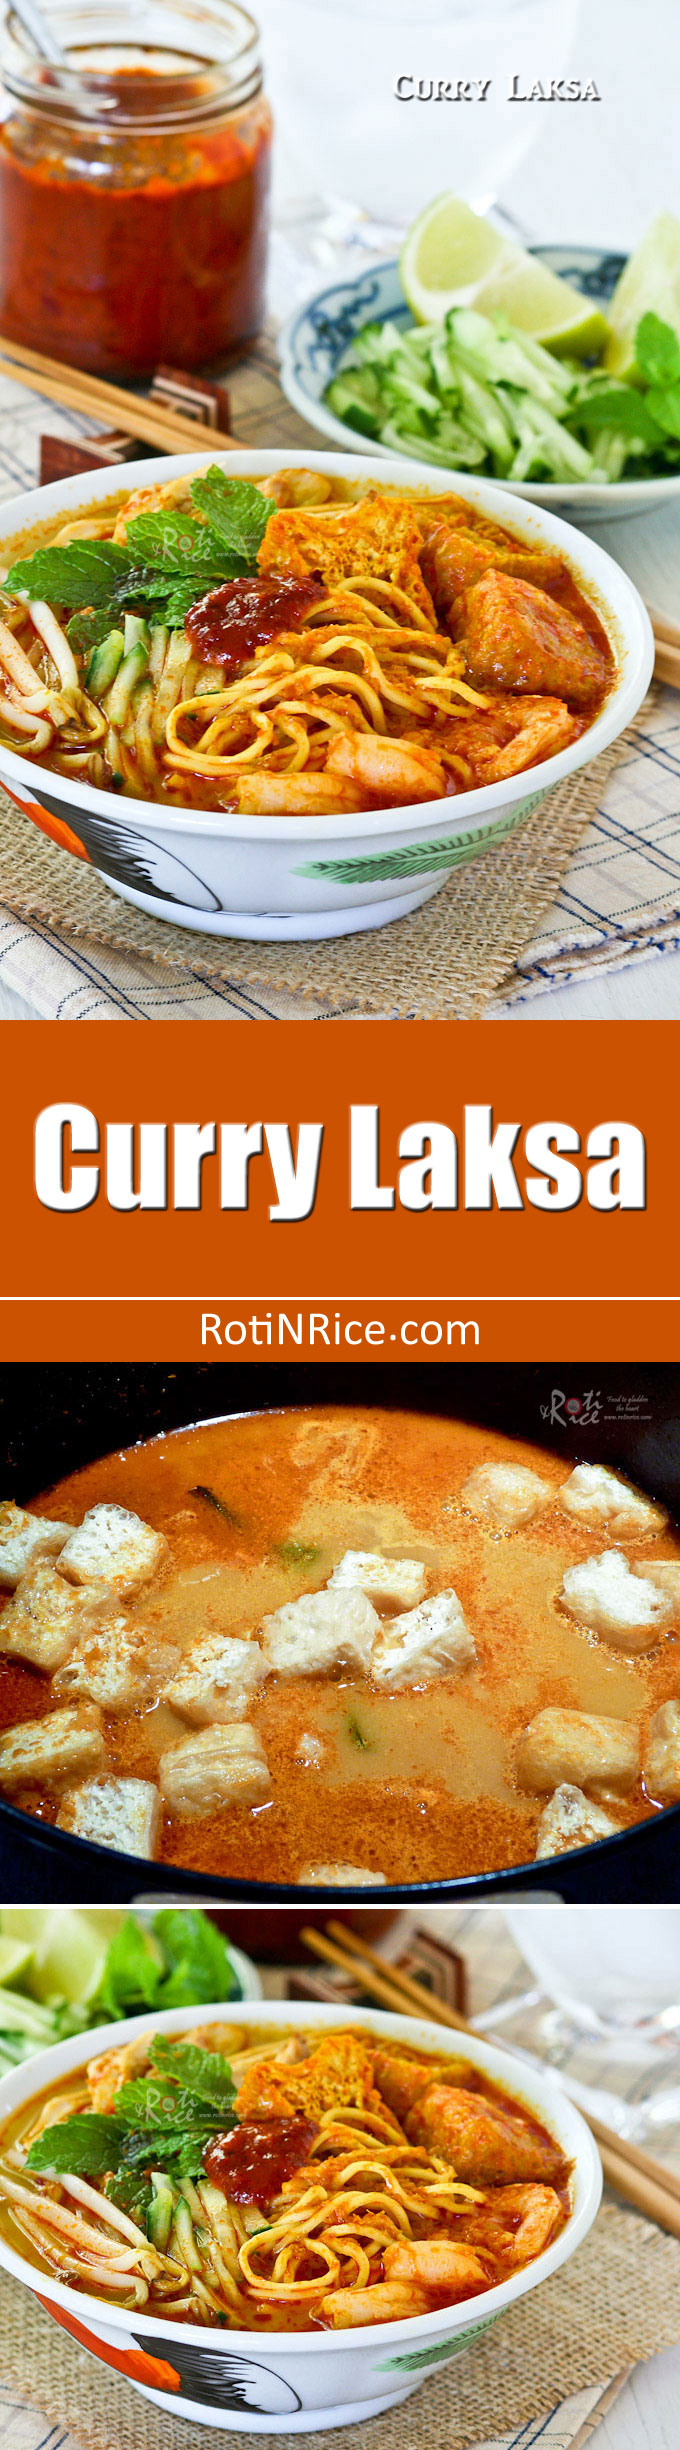 Curry Laksa, a tasty and spicy Malaysian coconut based curried noodle soup topped with shredded chicken, shrimps, fried tofu, and bean sprouts. | RotiNRice.com